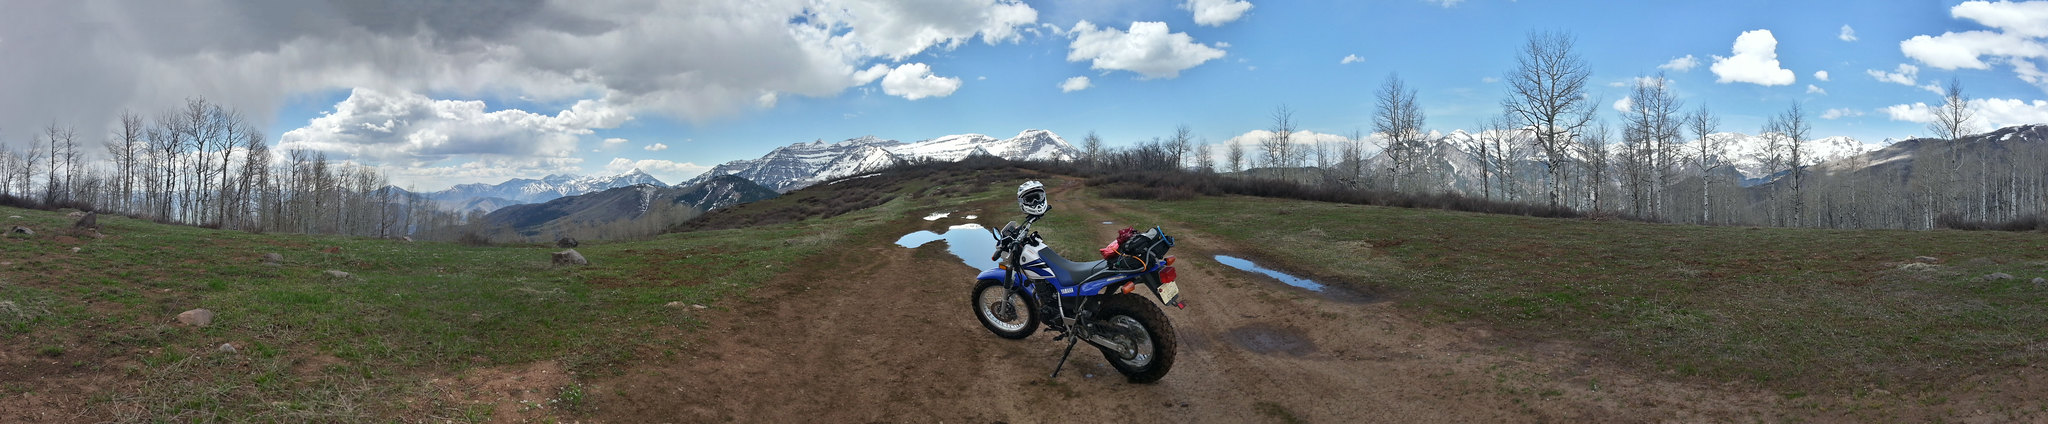 TW200 parked on a trail behind Mount Timpanogos